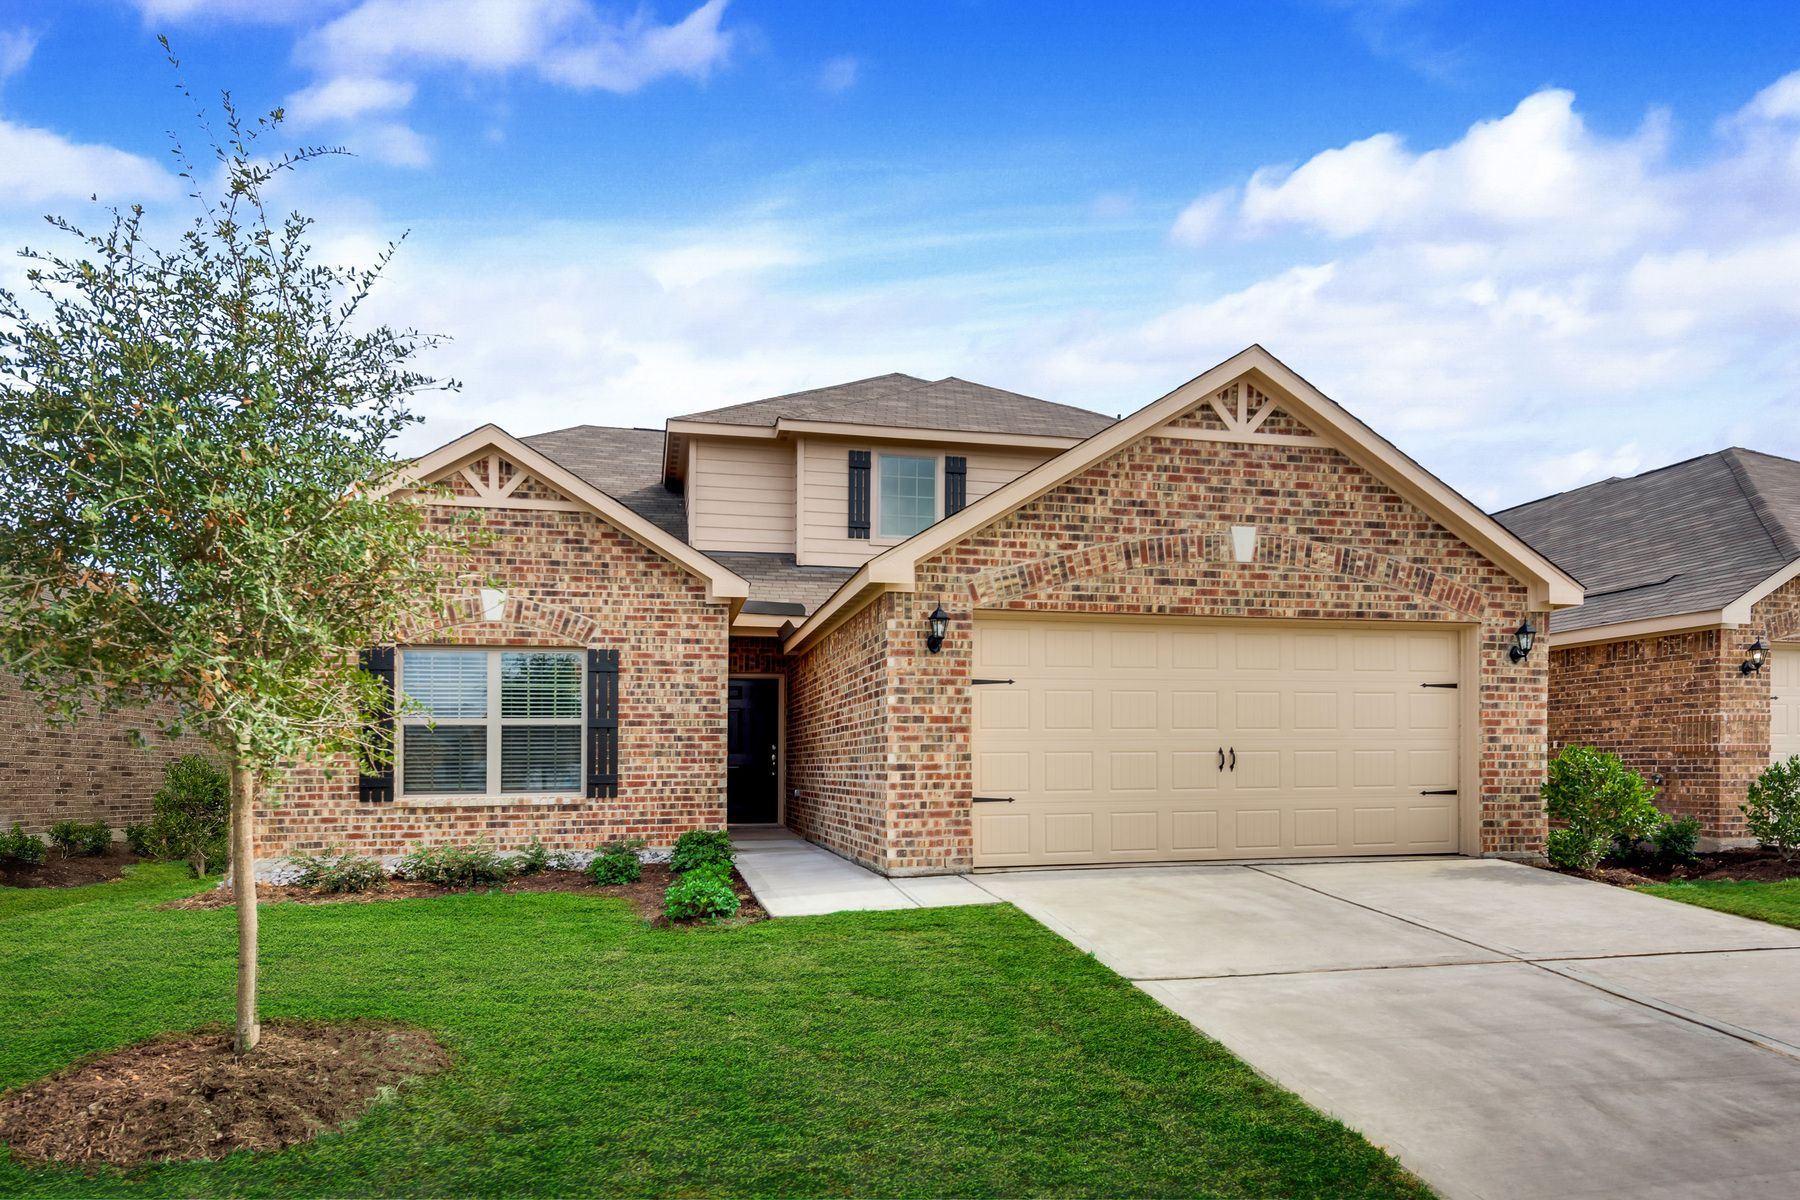 LGI Homes at Willowwood:The Cypress has great curb appeal!